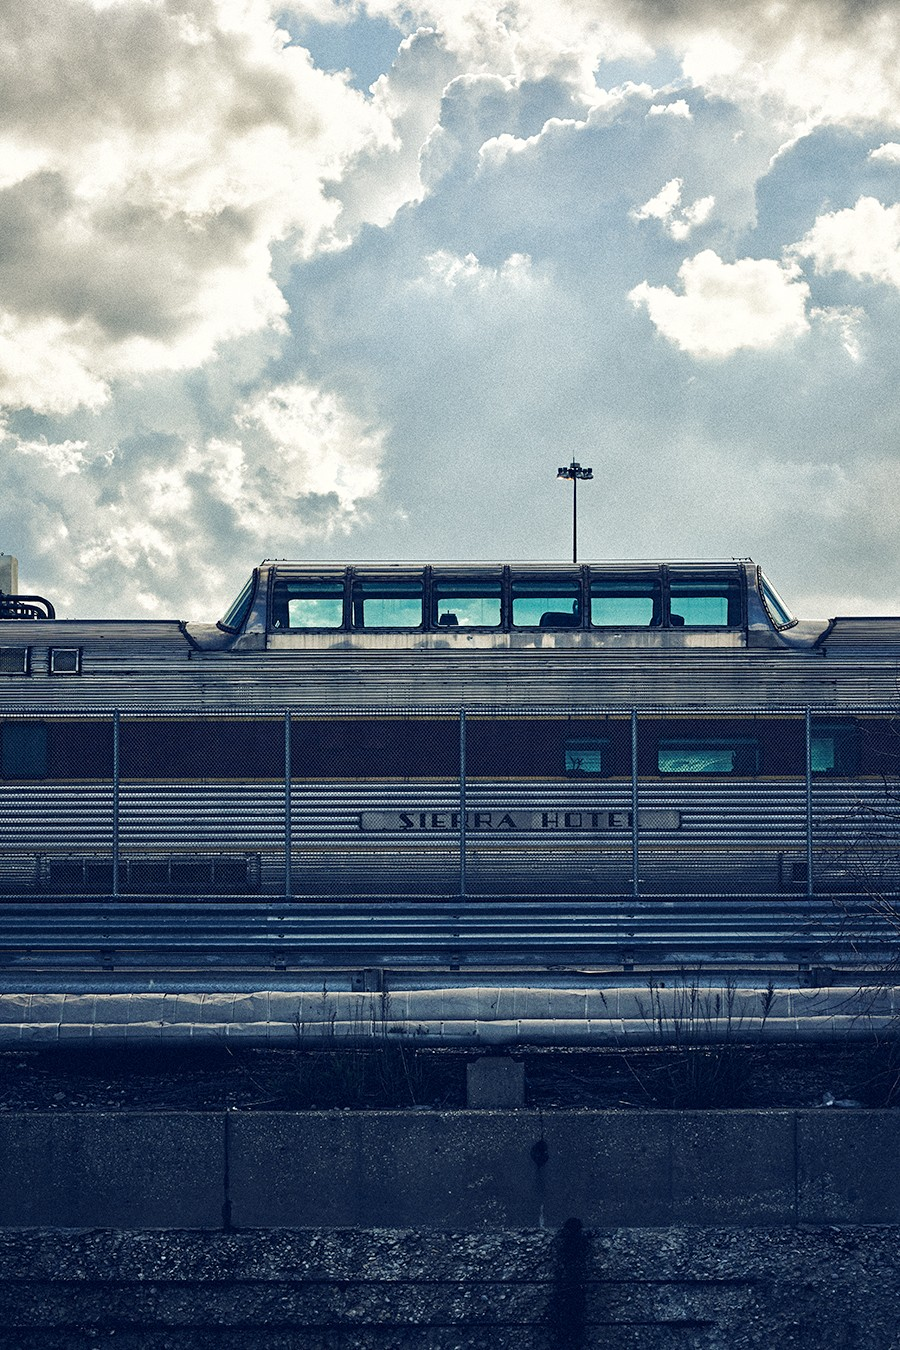 You can catch a glimpse of vintage coach cars in the Amtrak Car Yard along the route to China Town.